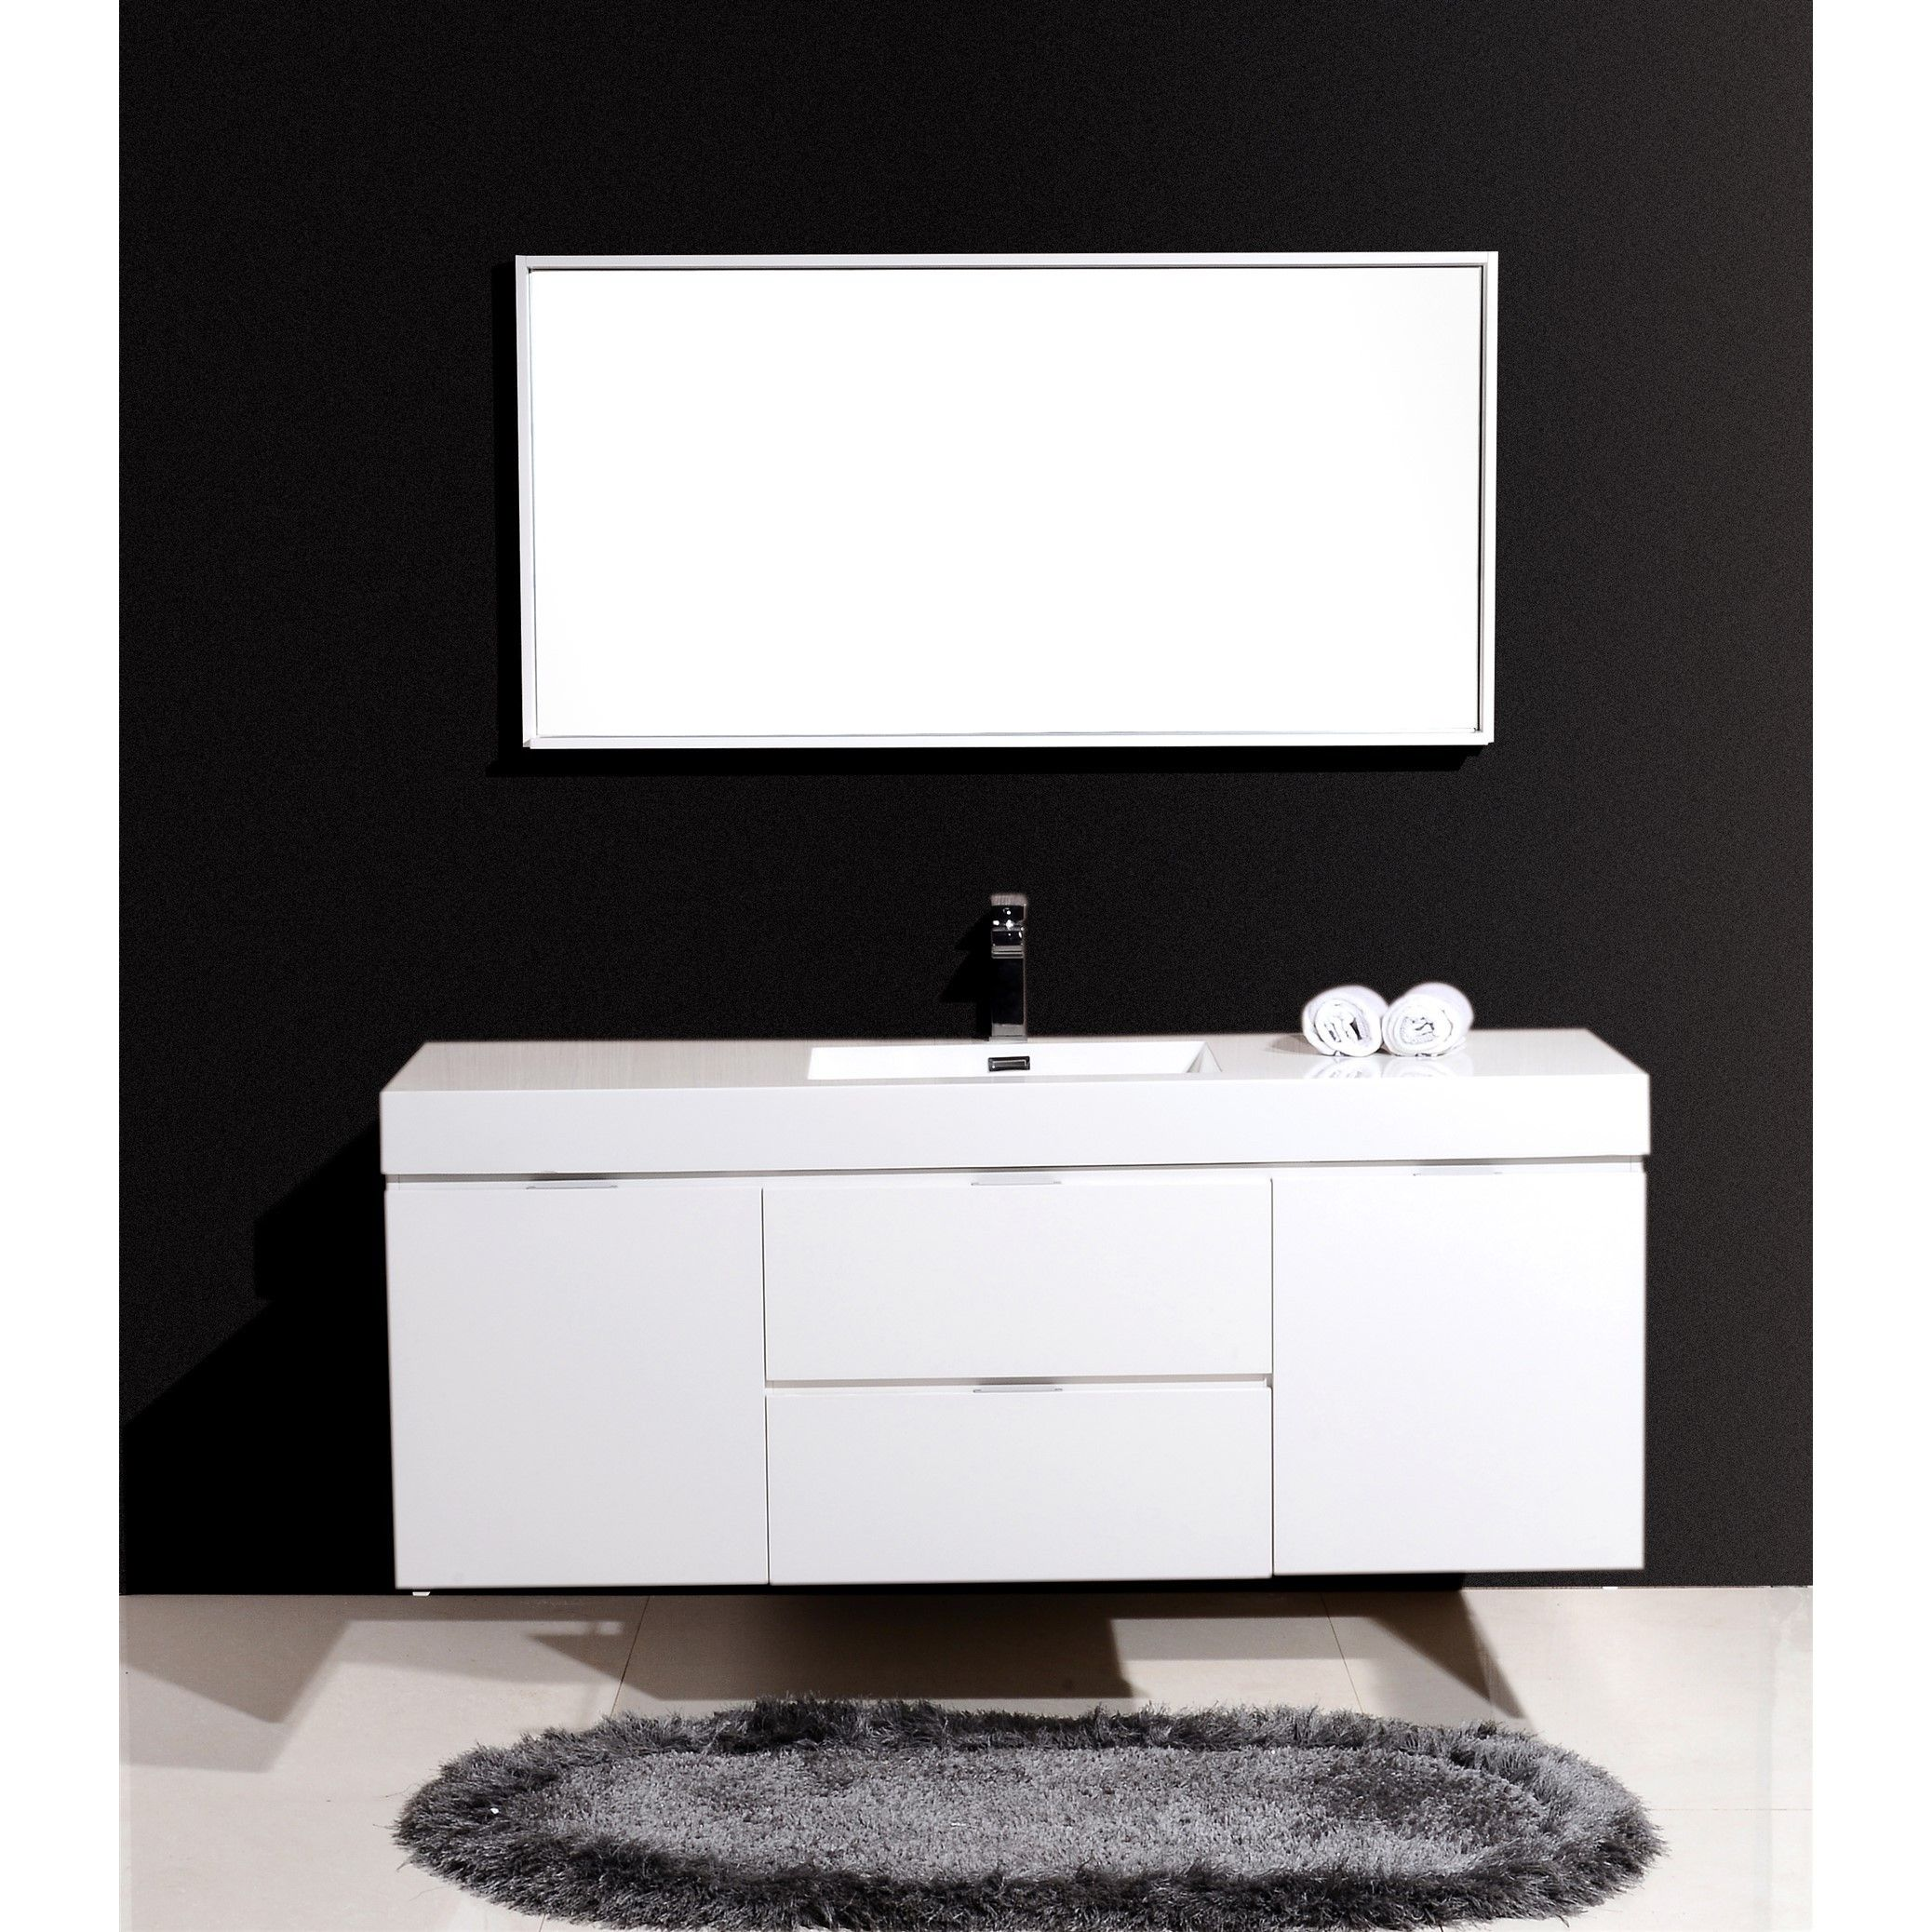 Kube Bath KubeBath Bliss 59 inch Single Sink Bathroom Vanity High